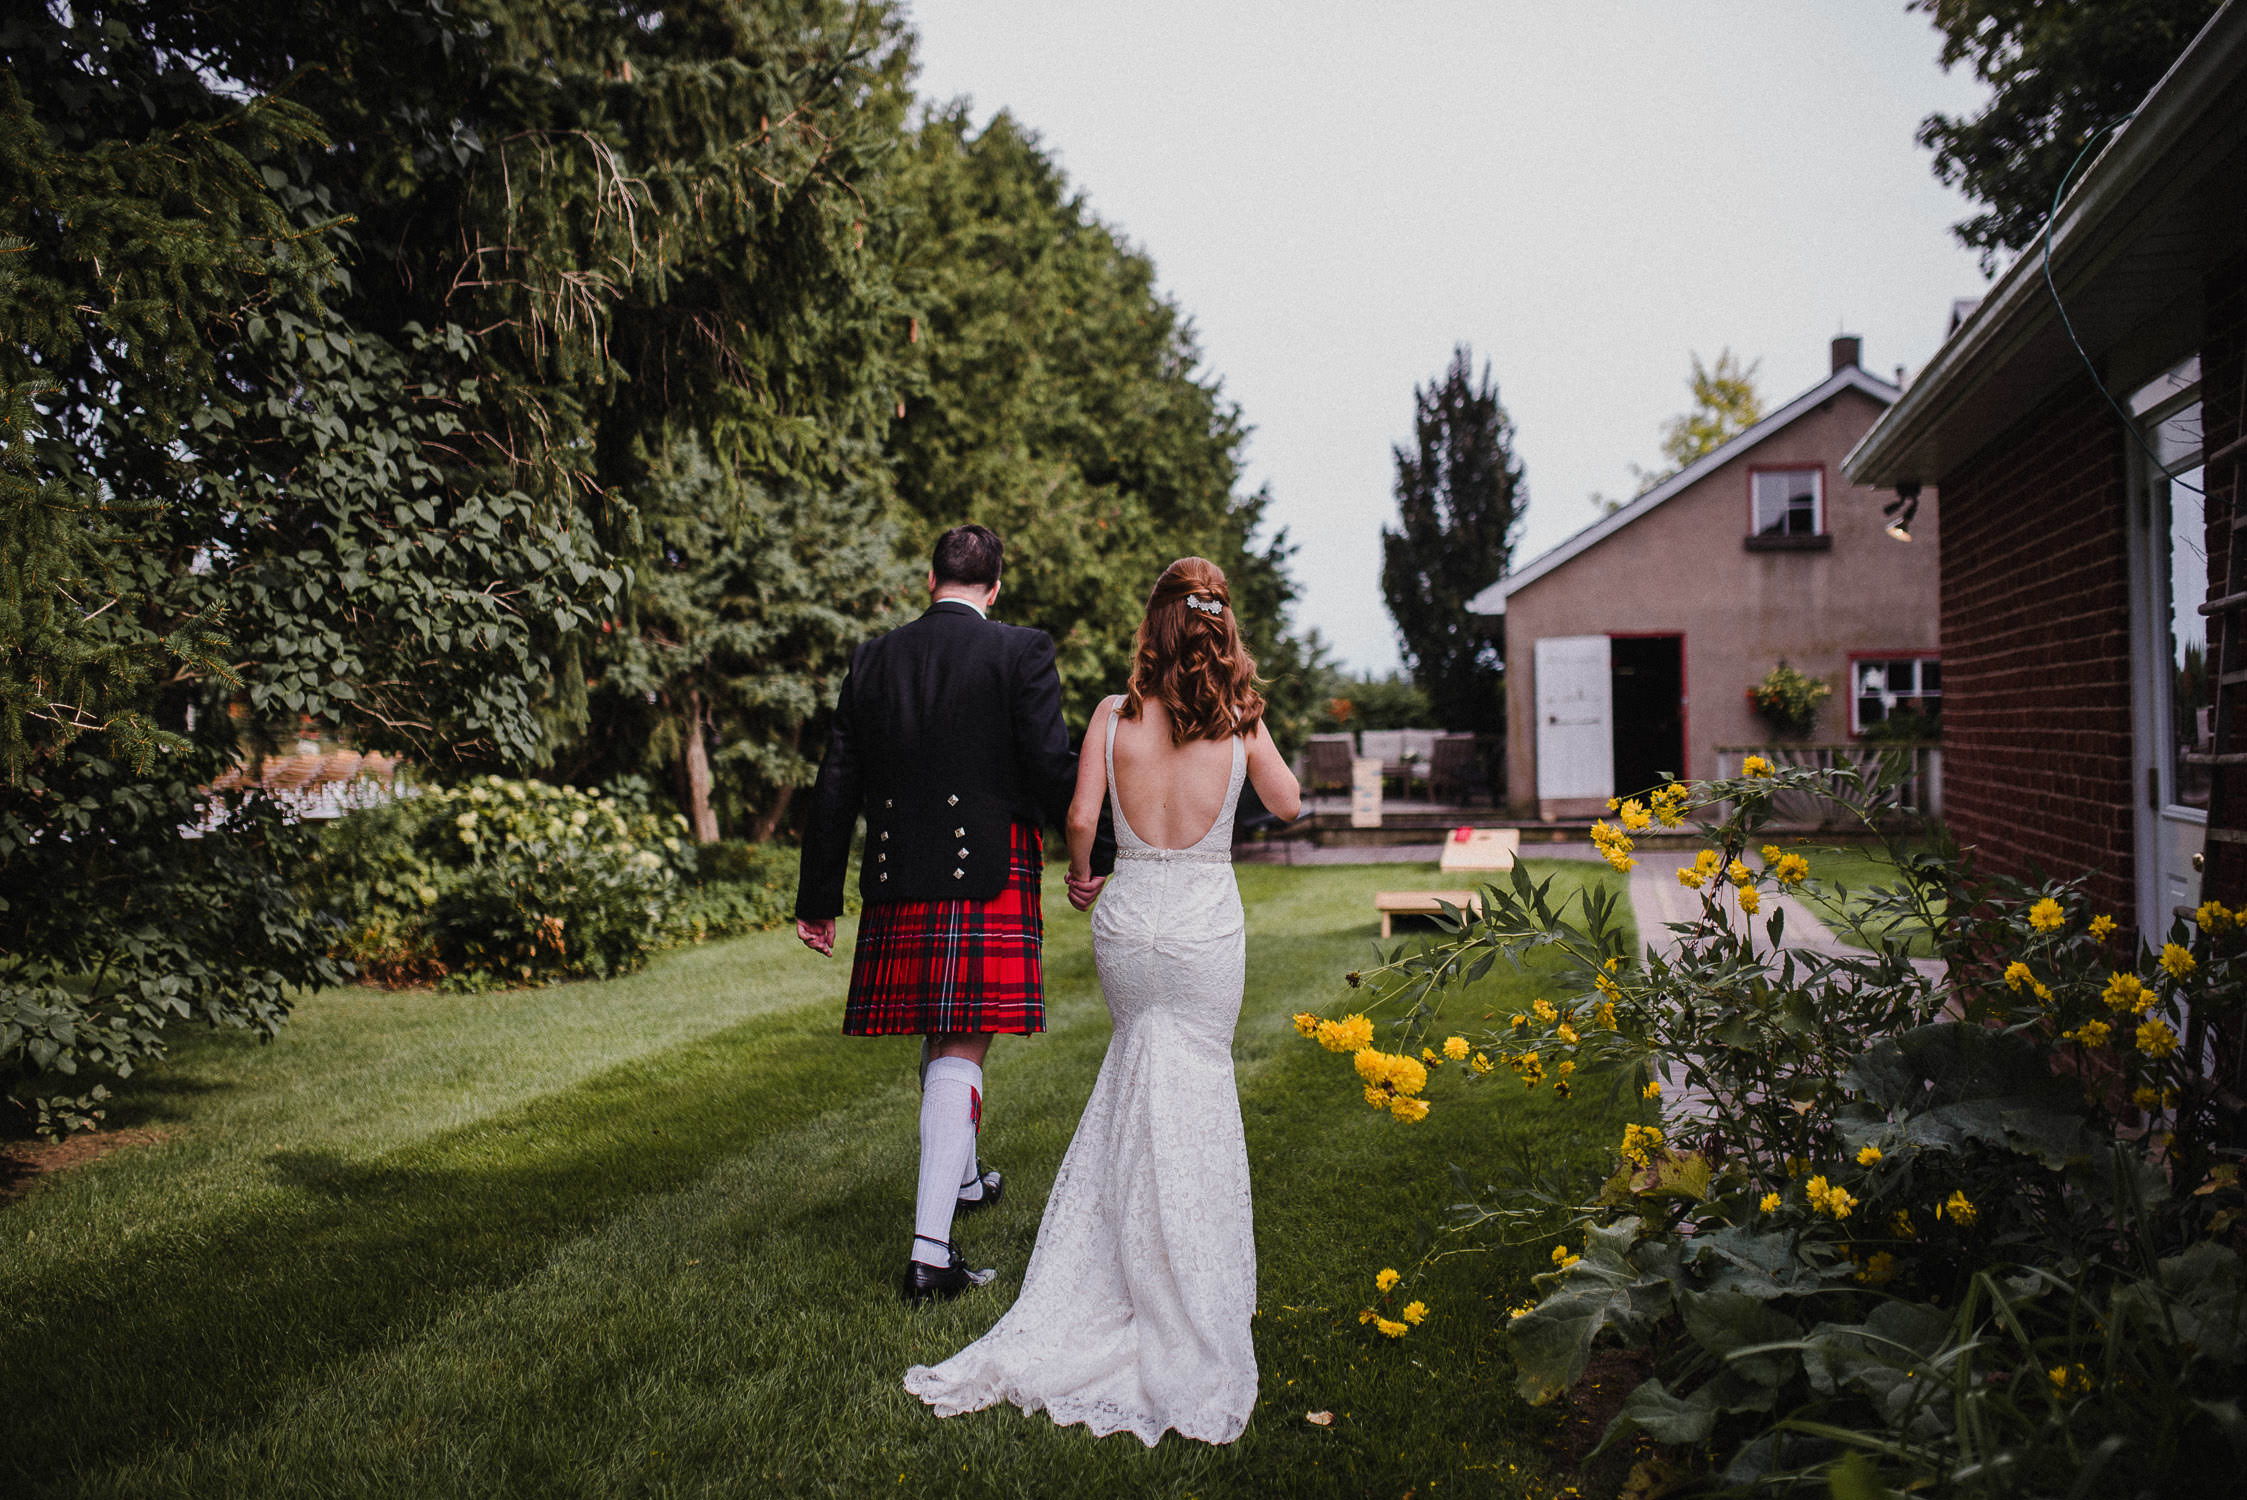 The bride and groom walk along the grass hand-in-hand before their wedding ceremony at Cambium Farm.